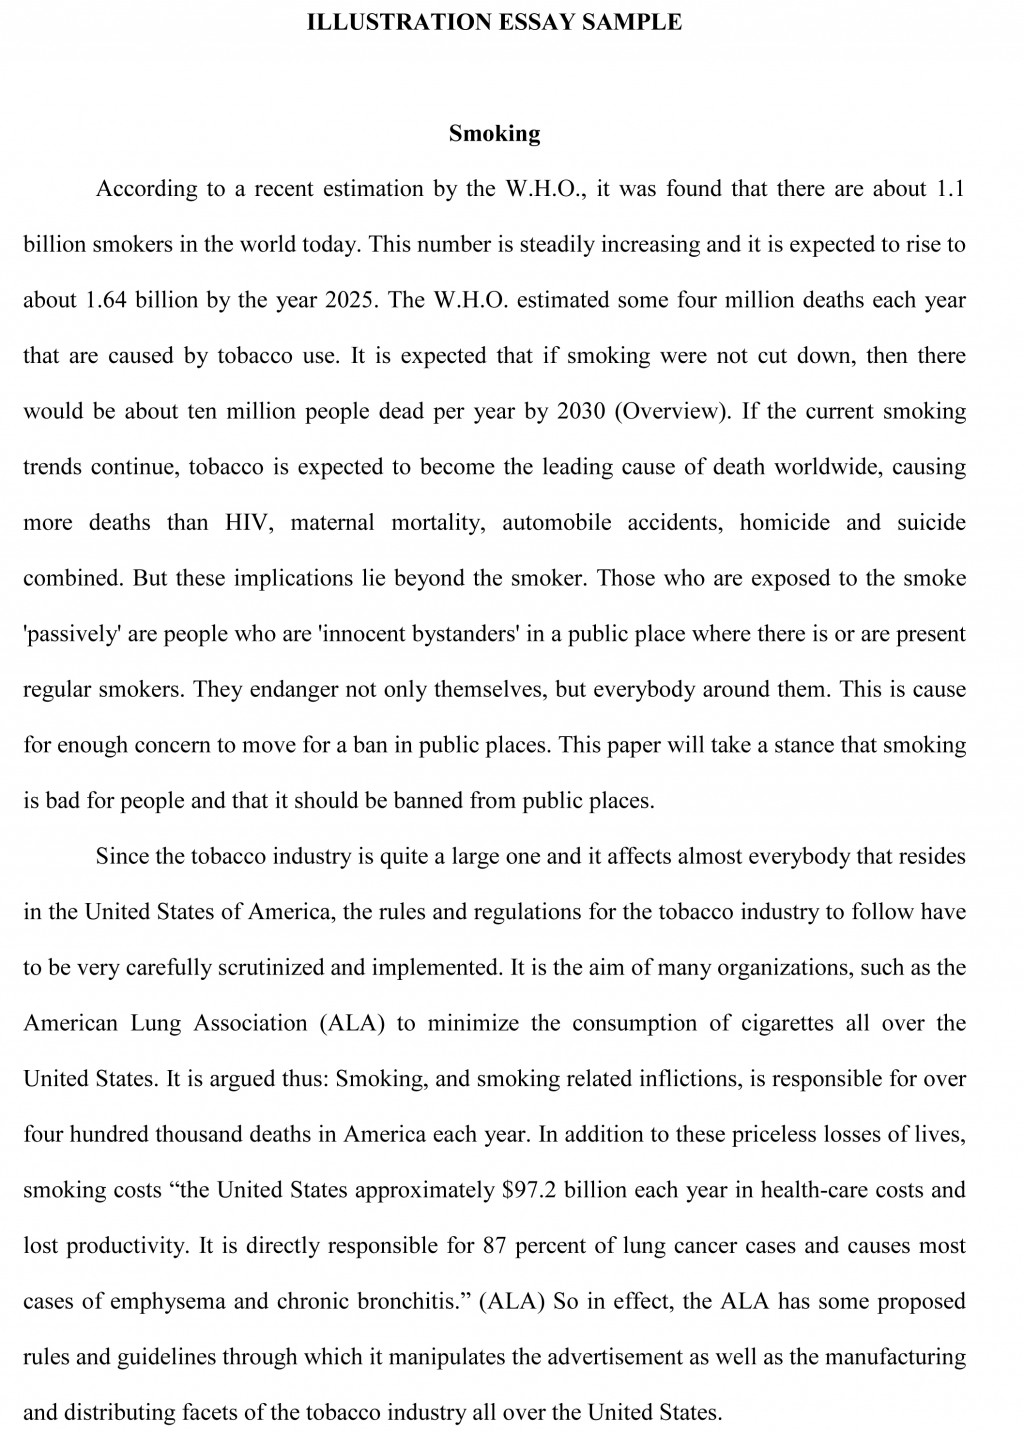 014 Illustration Essay Sample How To Write Autobiography Exceptional A An Conclusion For High School Sociological Large